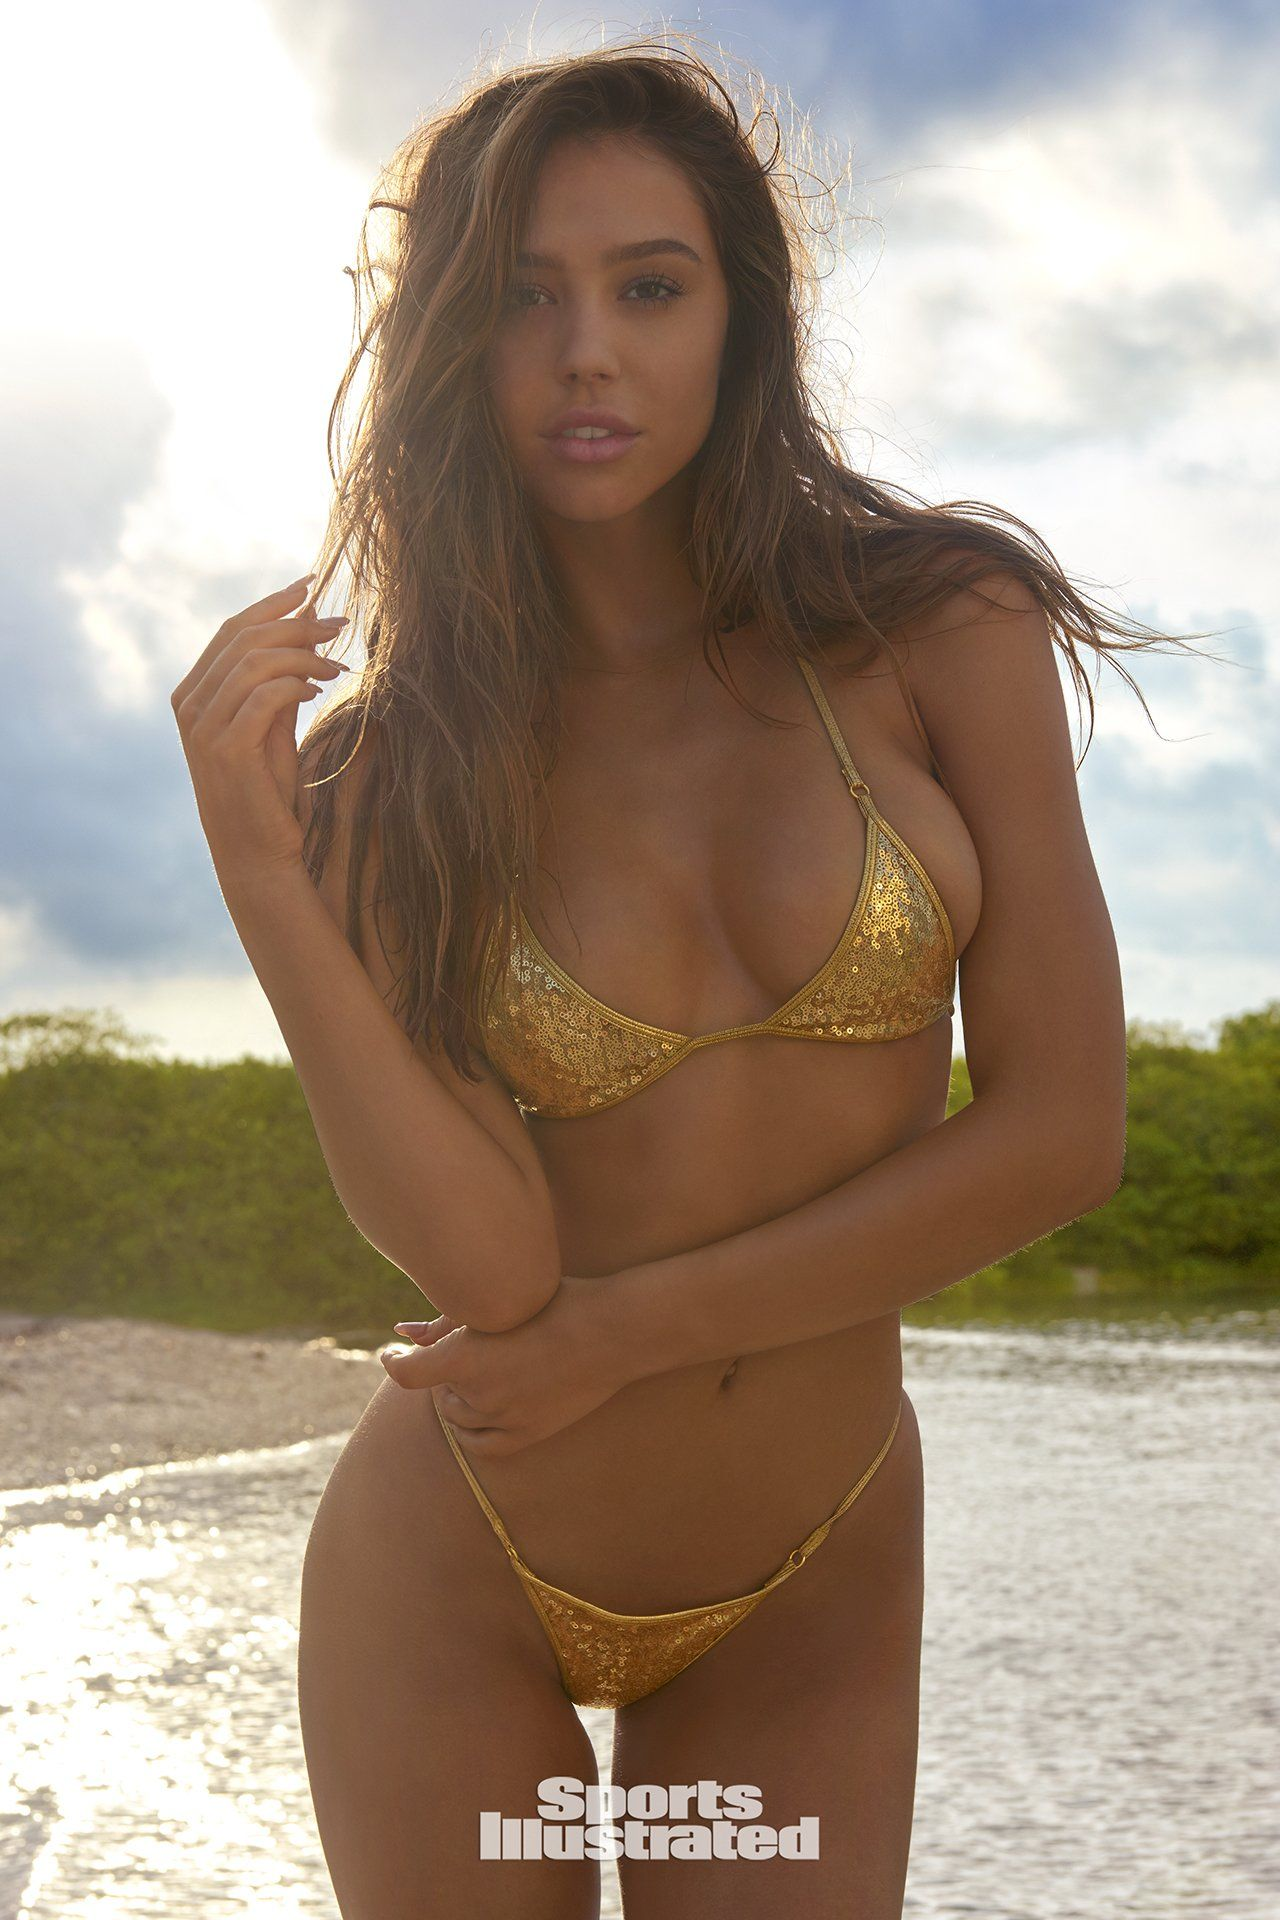 Rookie of the Year: Alexis Ren posiert in der Sports Illustrated Swimsuit Edition 2018 18